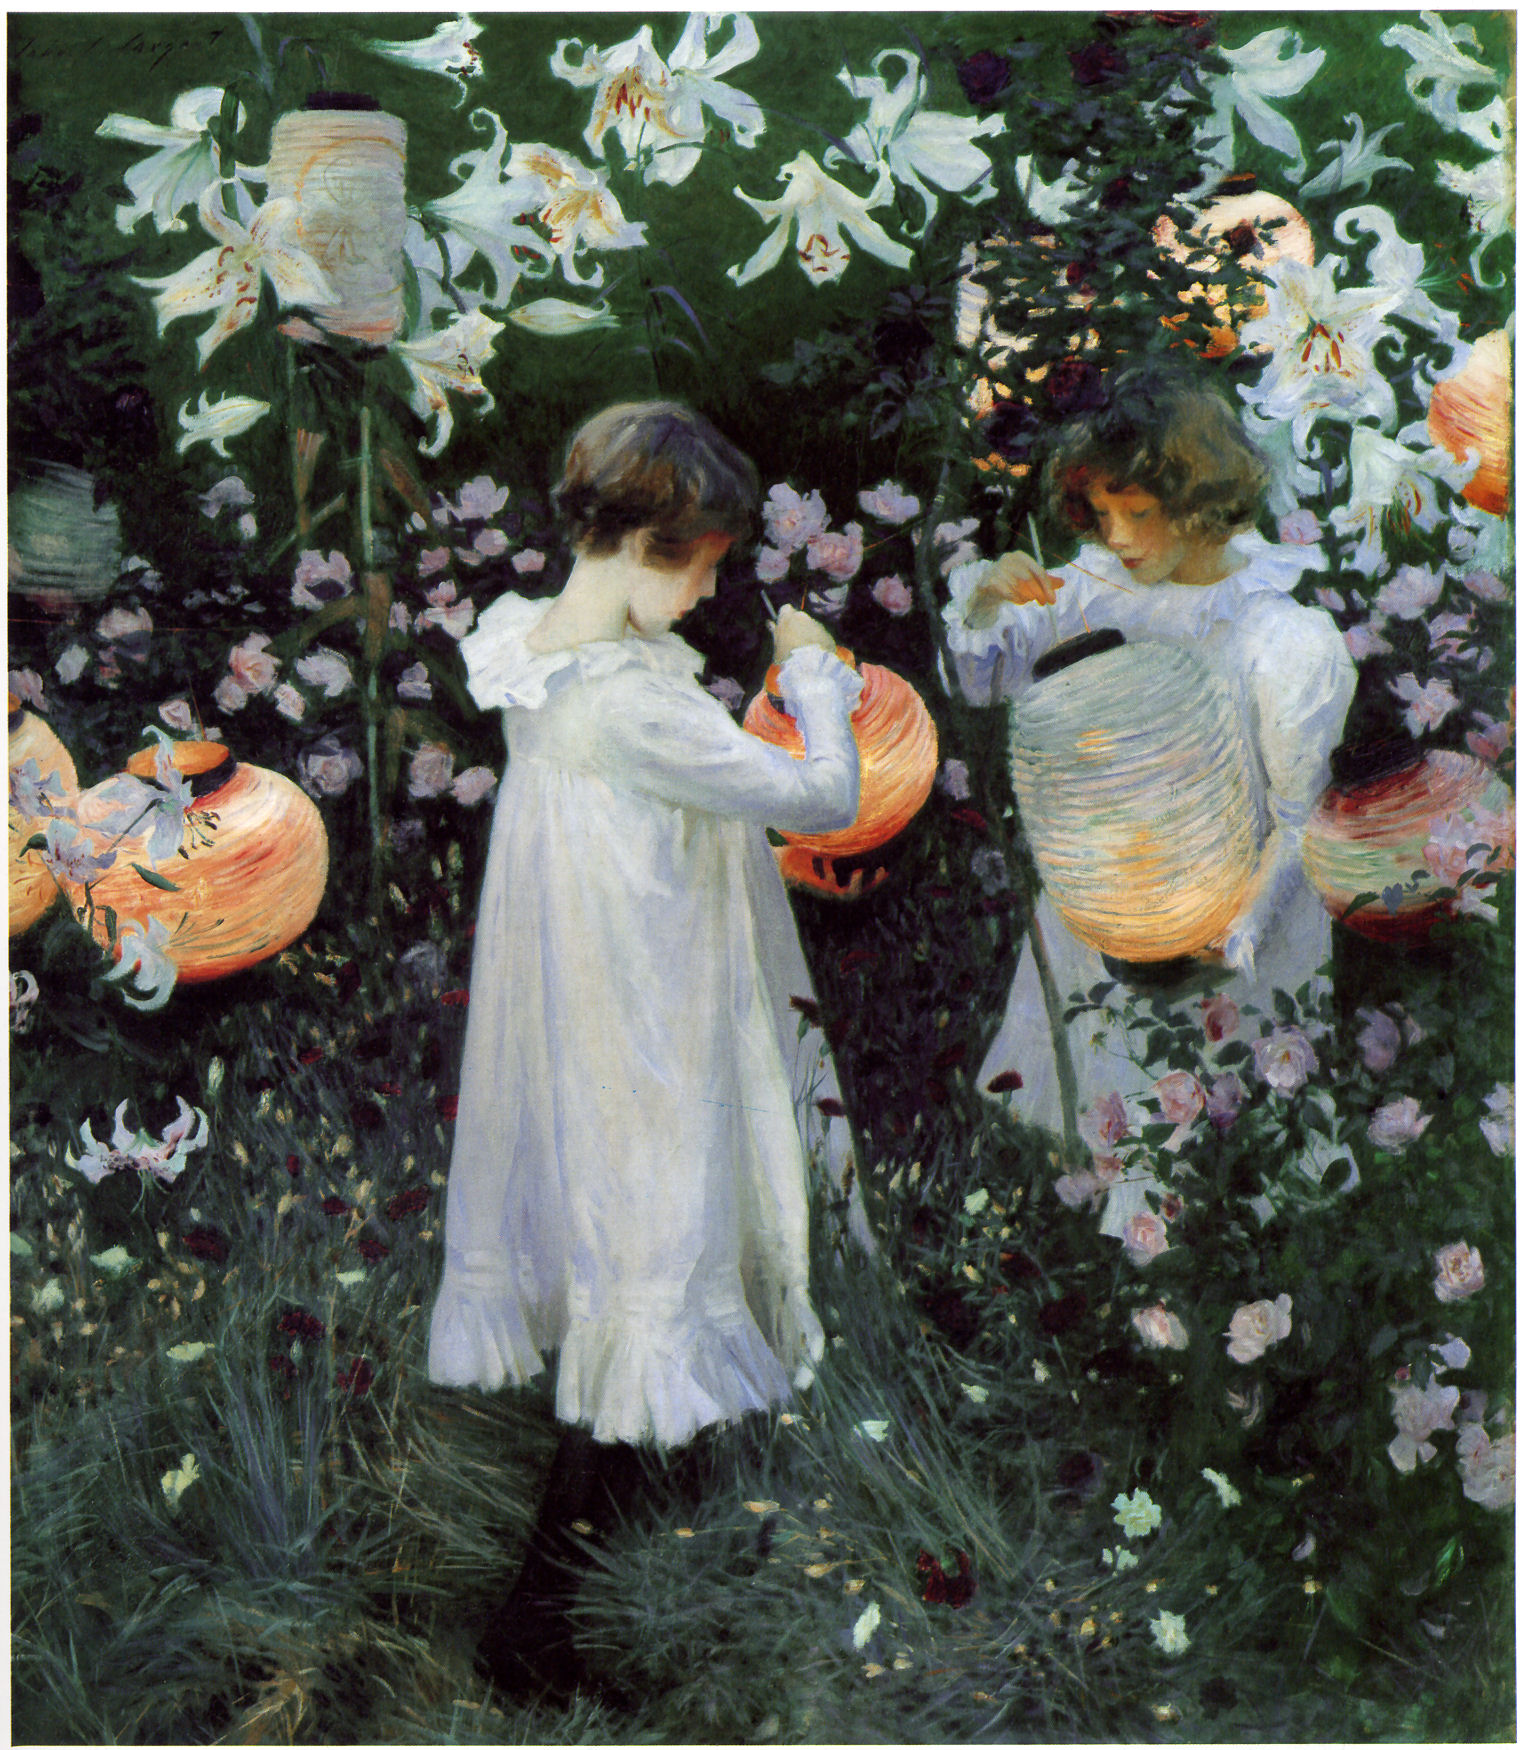 John Singer Sargent [CC-BY-2.0], via Wikimedia Commons